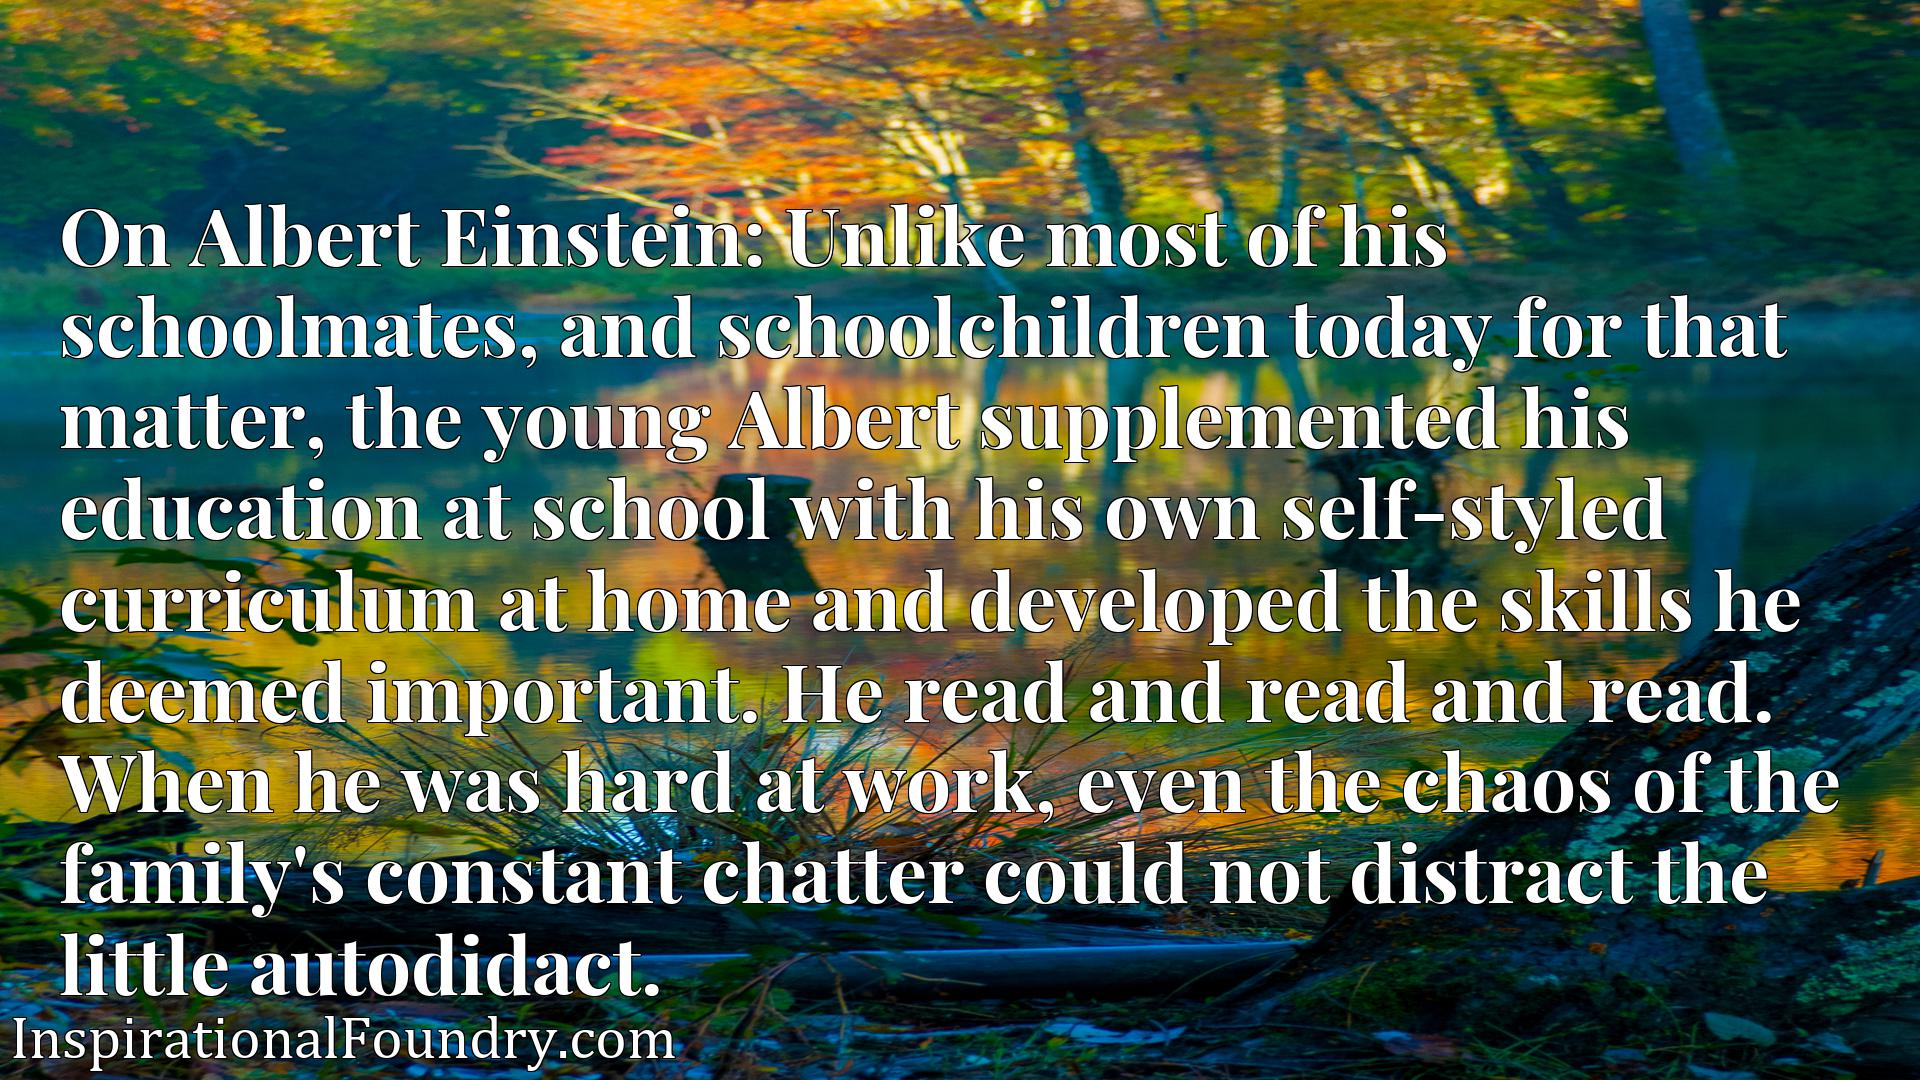 On Albert Einstein: Unlike most of his schoolmates, and schoolchildren today for that matter, the young Albert supplemented his education at school with his own self-styled curriculum at home and developed the skills he deemed important. He read and read and read. When he was hard at work, even the chaos of the family's constant chatter could not distract the little autodidact.